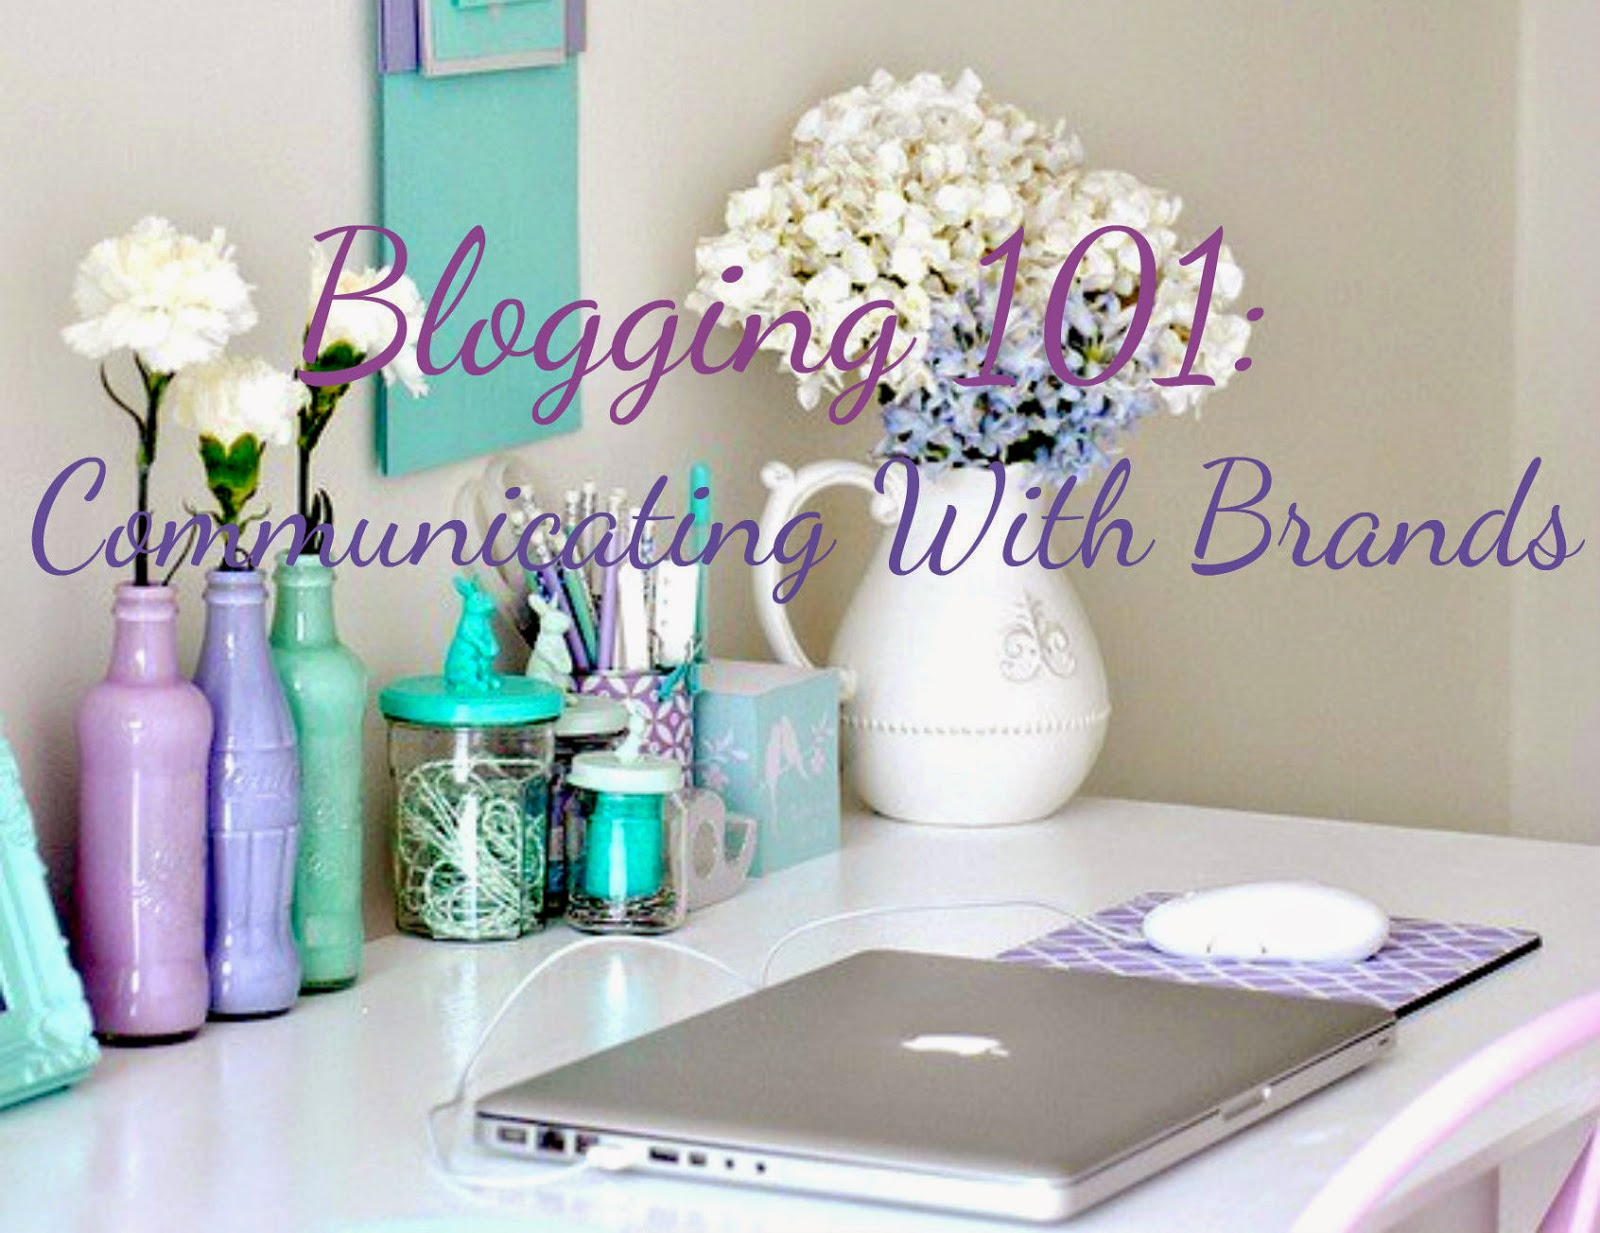 Blogging advice tips 101 communicating with brands blogger bloggers youwishyou